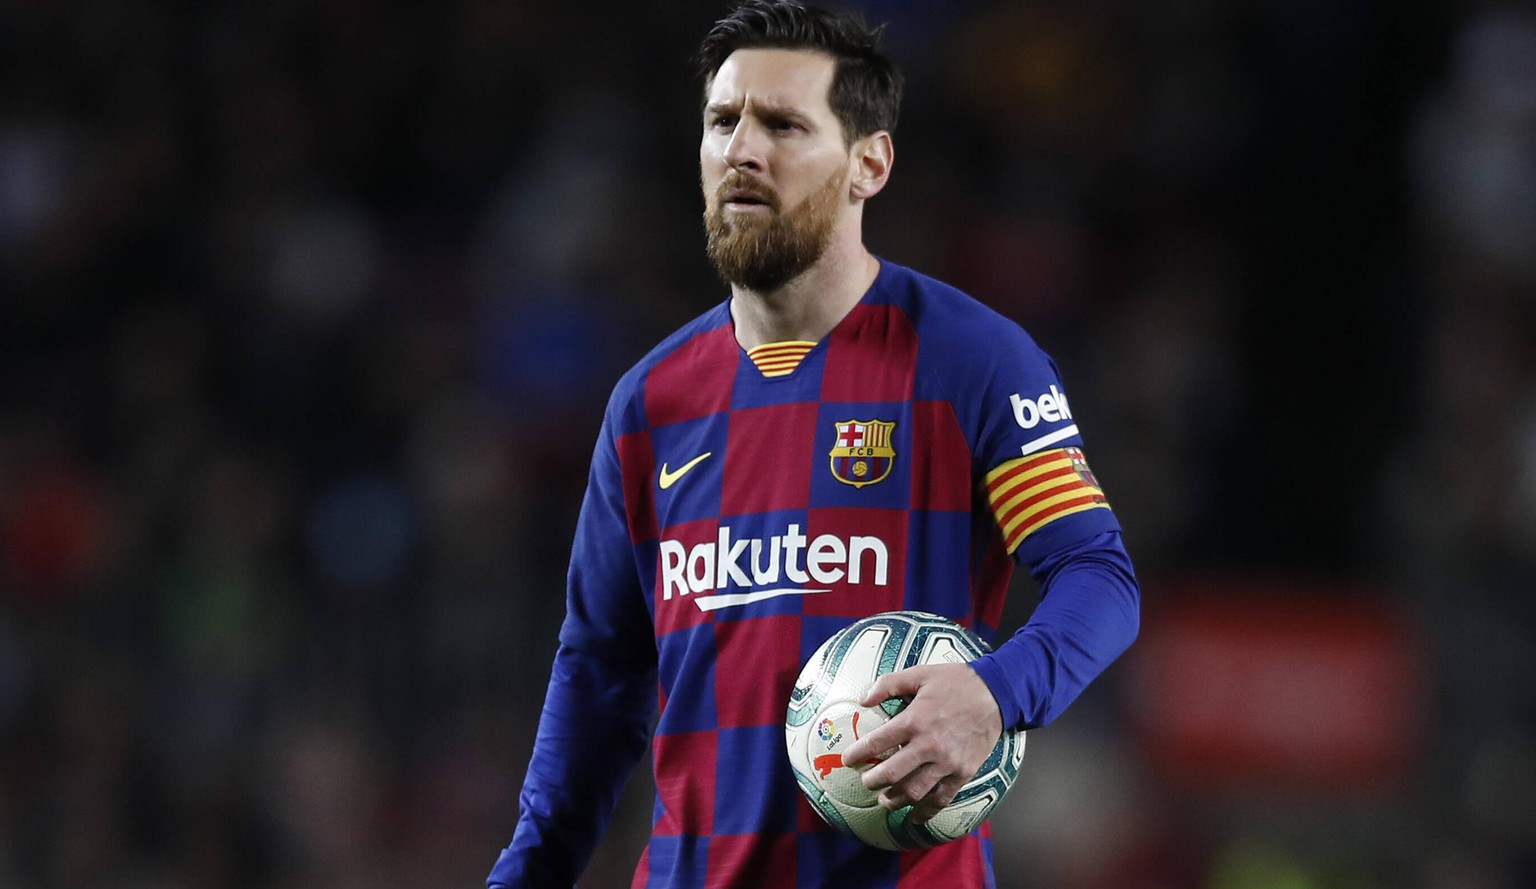 March 7, 2020, Barcelona, Catalonia, Spain: March 7, 2020 - Camp Nou, Barcelona, Spain - LaLiga Santander- FC Barcelona, Barca v Real Sociedad Lionel Messi of FC Barcelona looks on during the match. Barcelona Spain - ZUMAa178 20200307zapa178015 Copyright: xEricxAlonsox